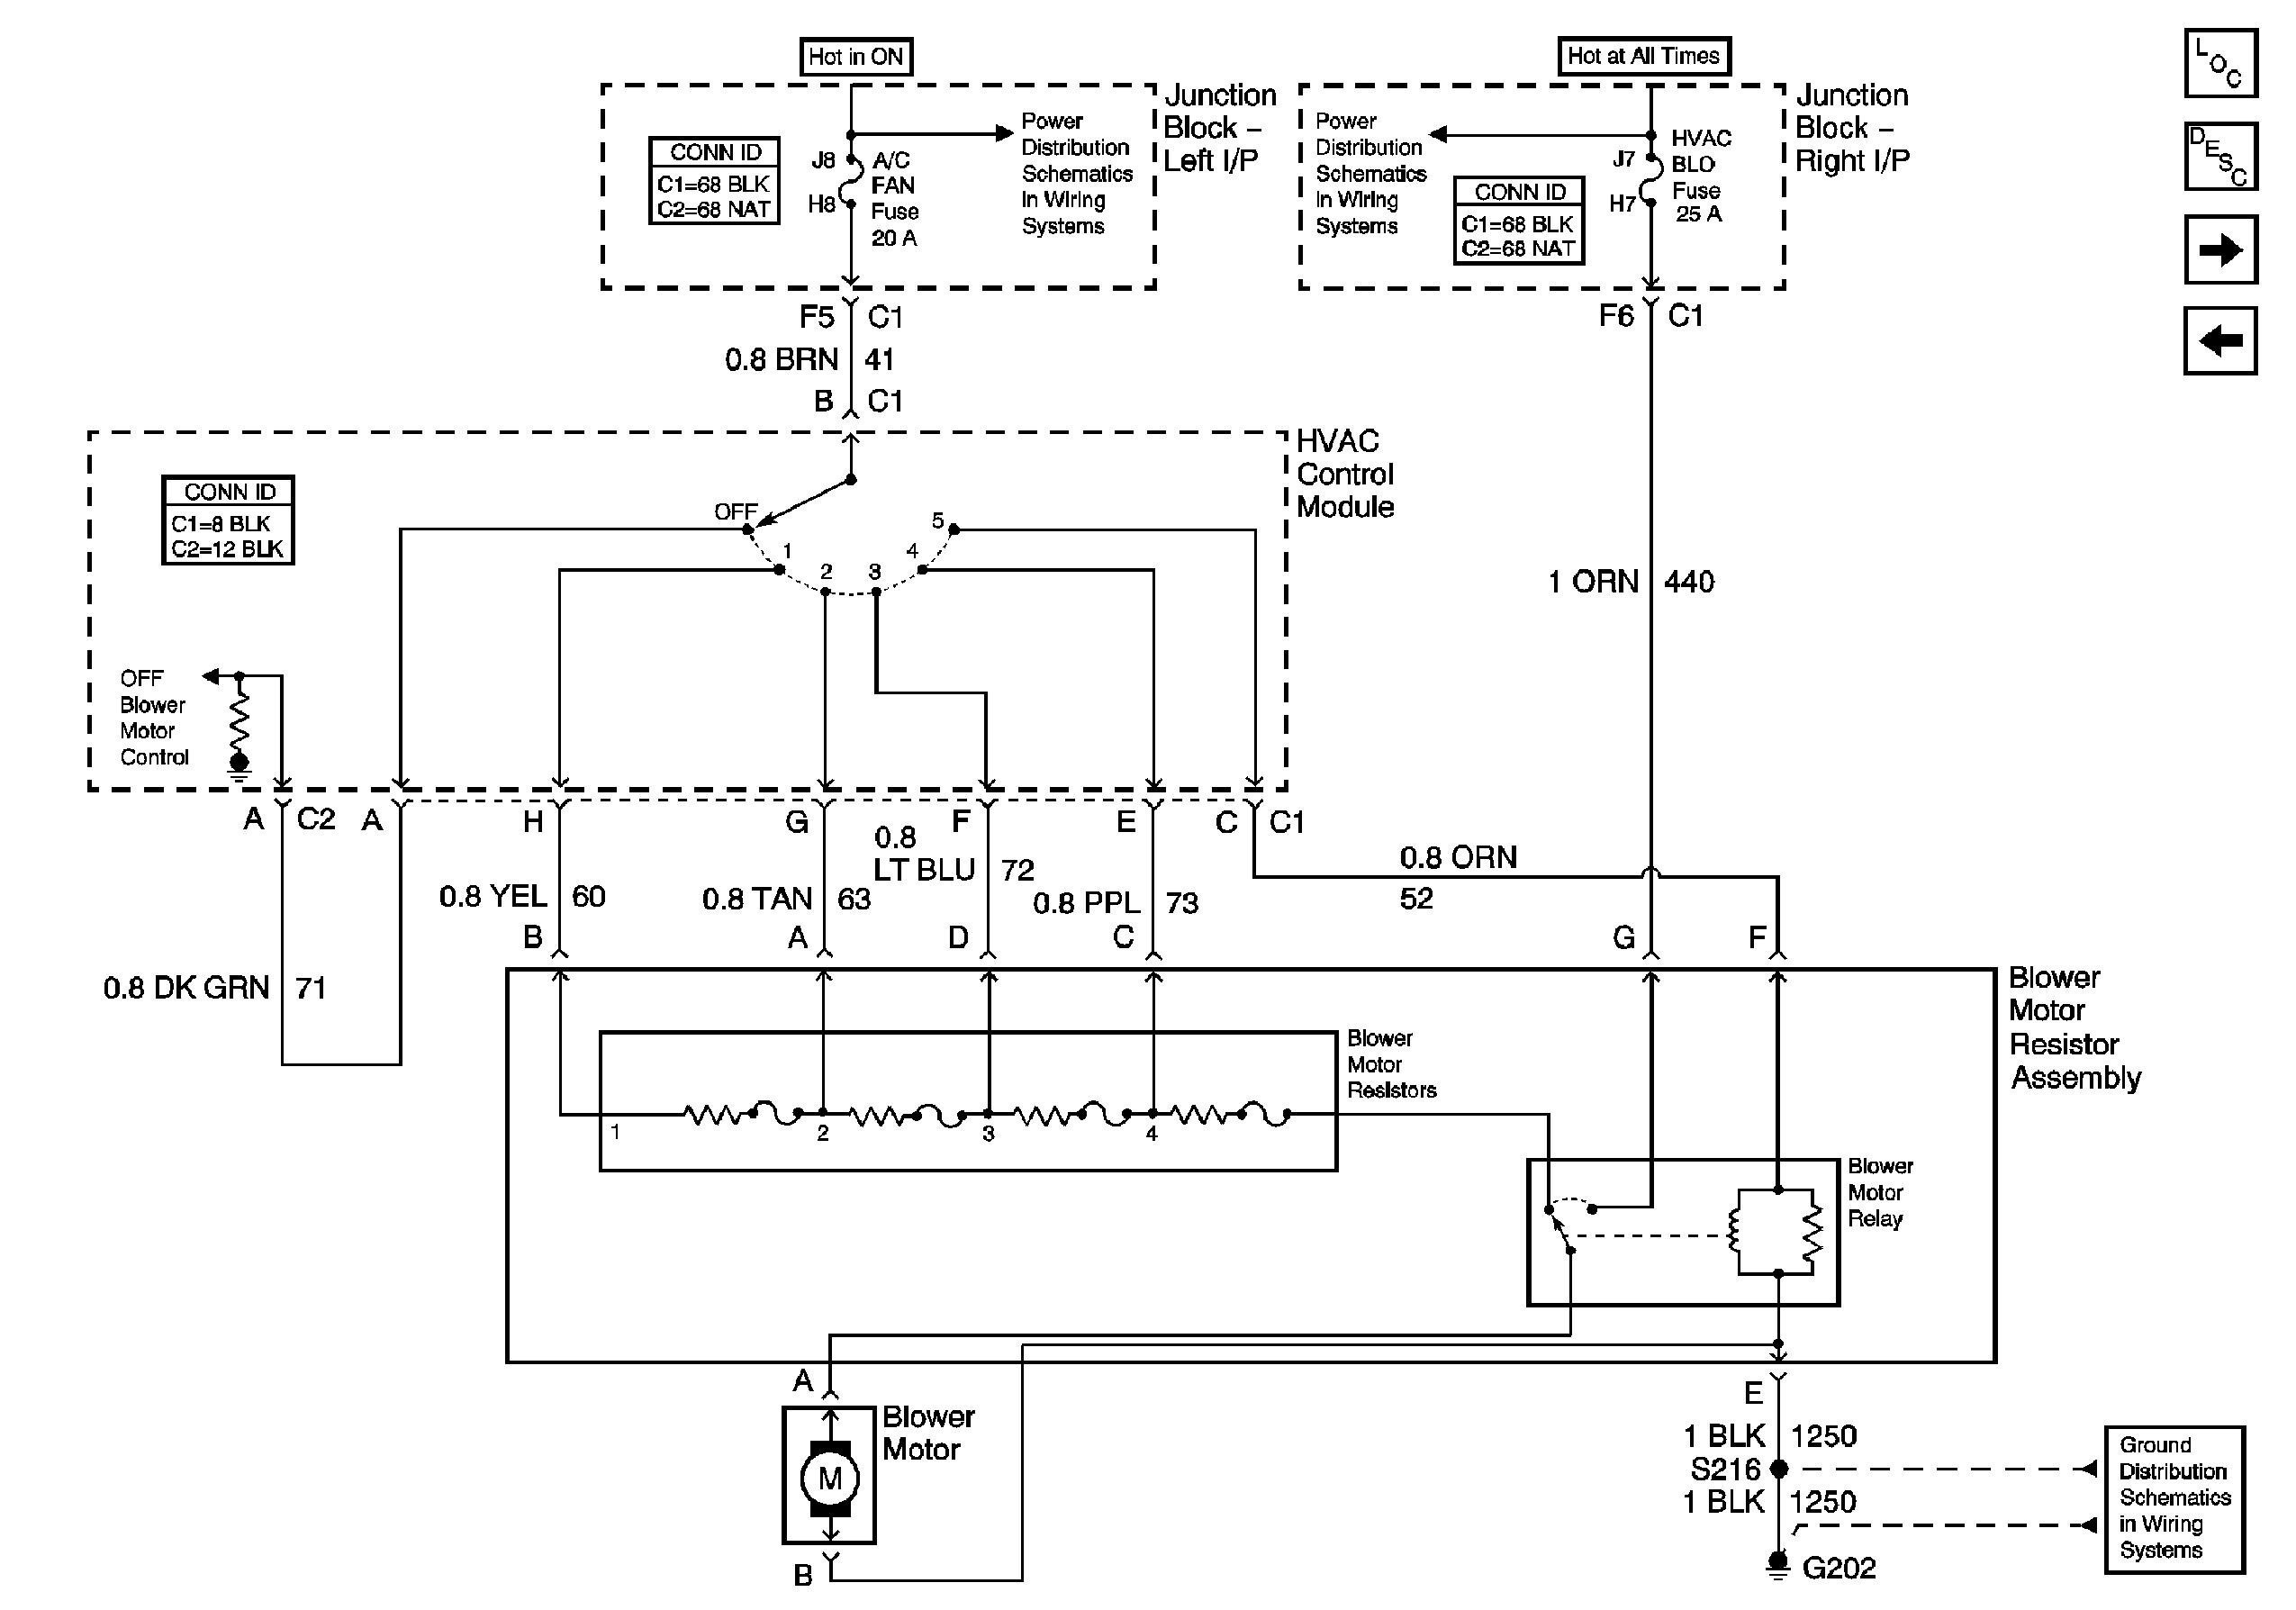 fasco blower motor wiring diagram Collection-Wiring Diagram For Fasco Blower Motor Valid Fresh Blower Motor Wiring Diagram Wiring 7-f